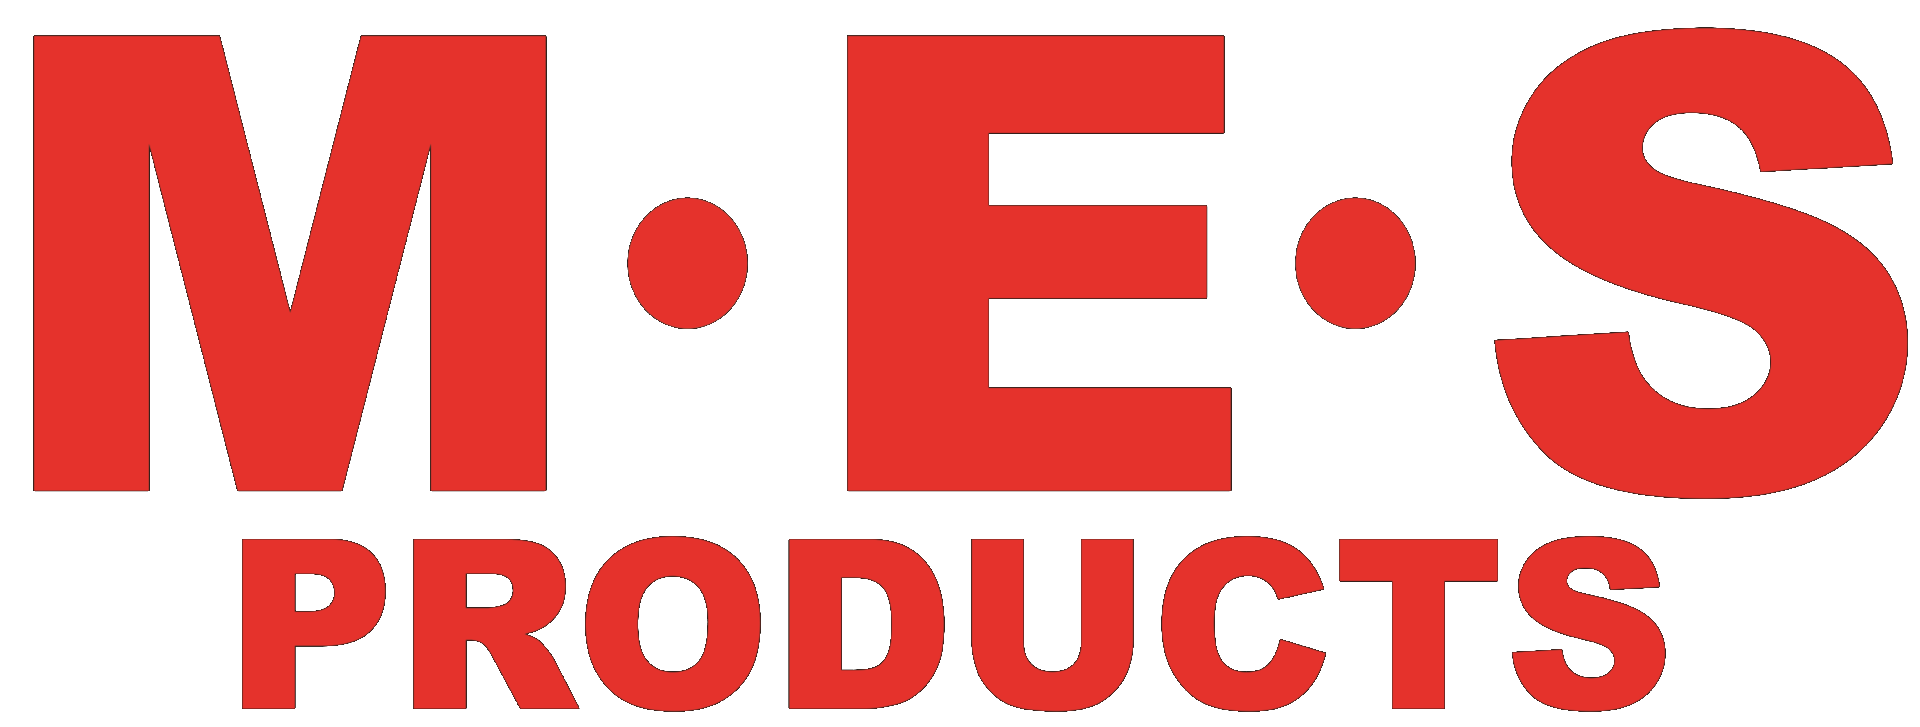 mes products logo